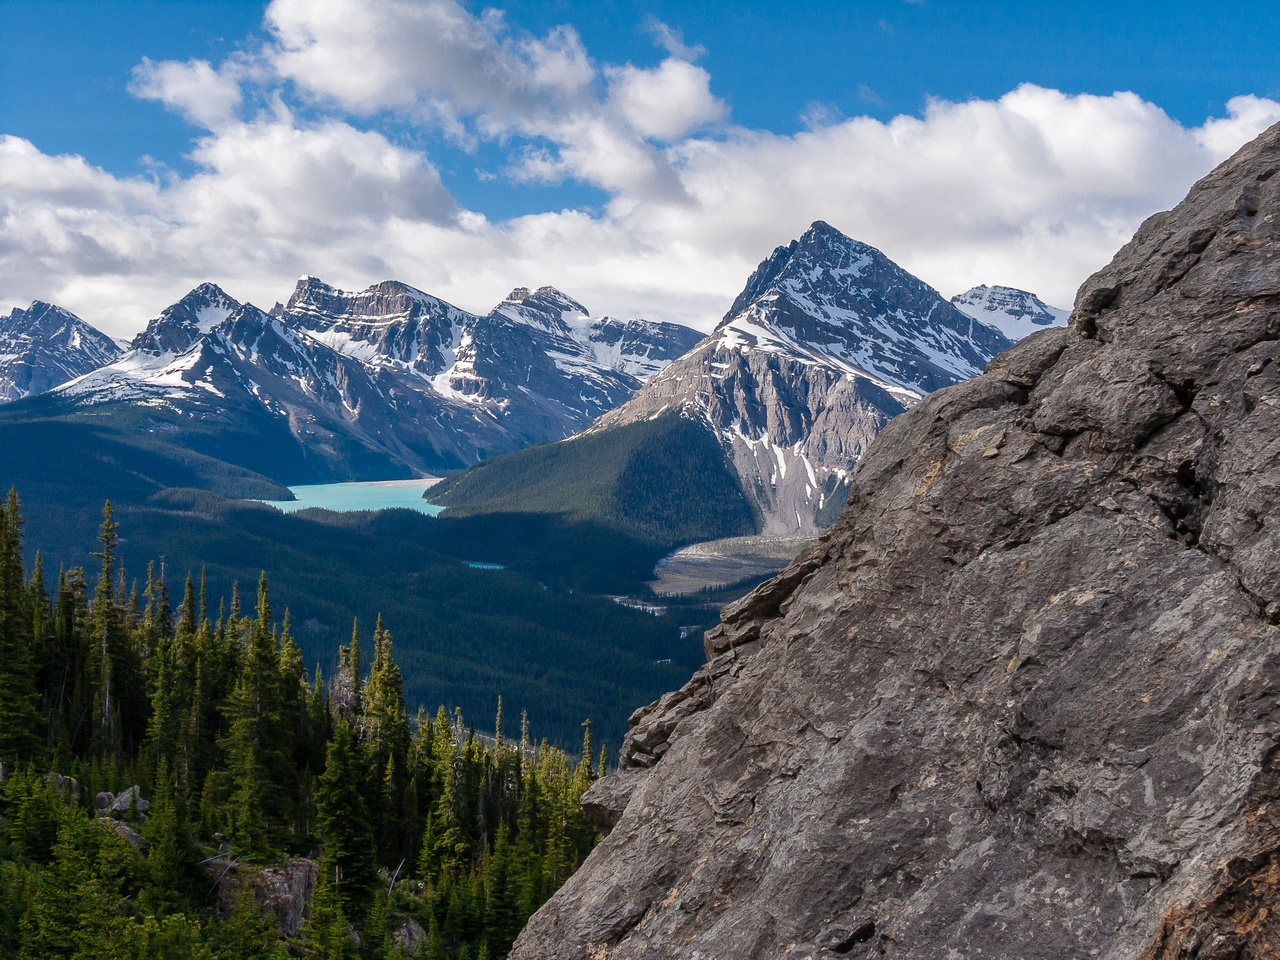 Looking down Peyto Lake at Jimmy Simpson and Mount Thompson.